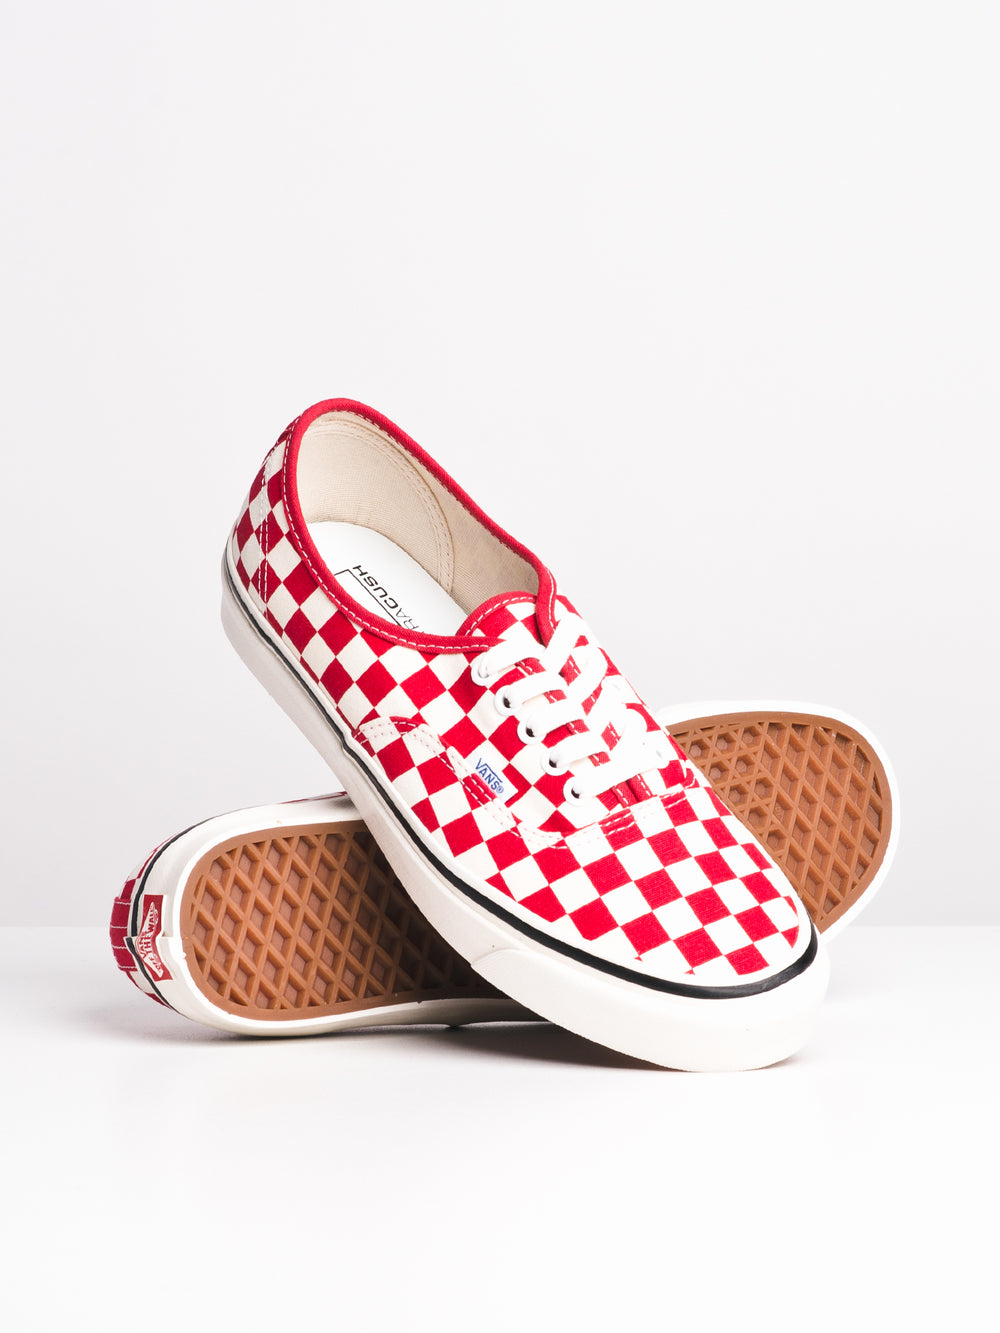 MENS AUTHENTIC 44 DX - OG RED CHECK - CLEARANCE